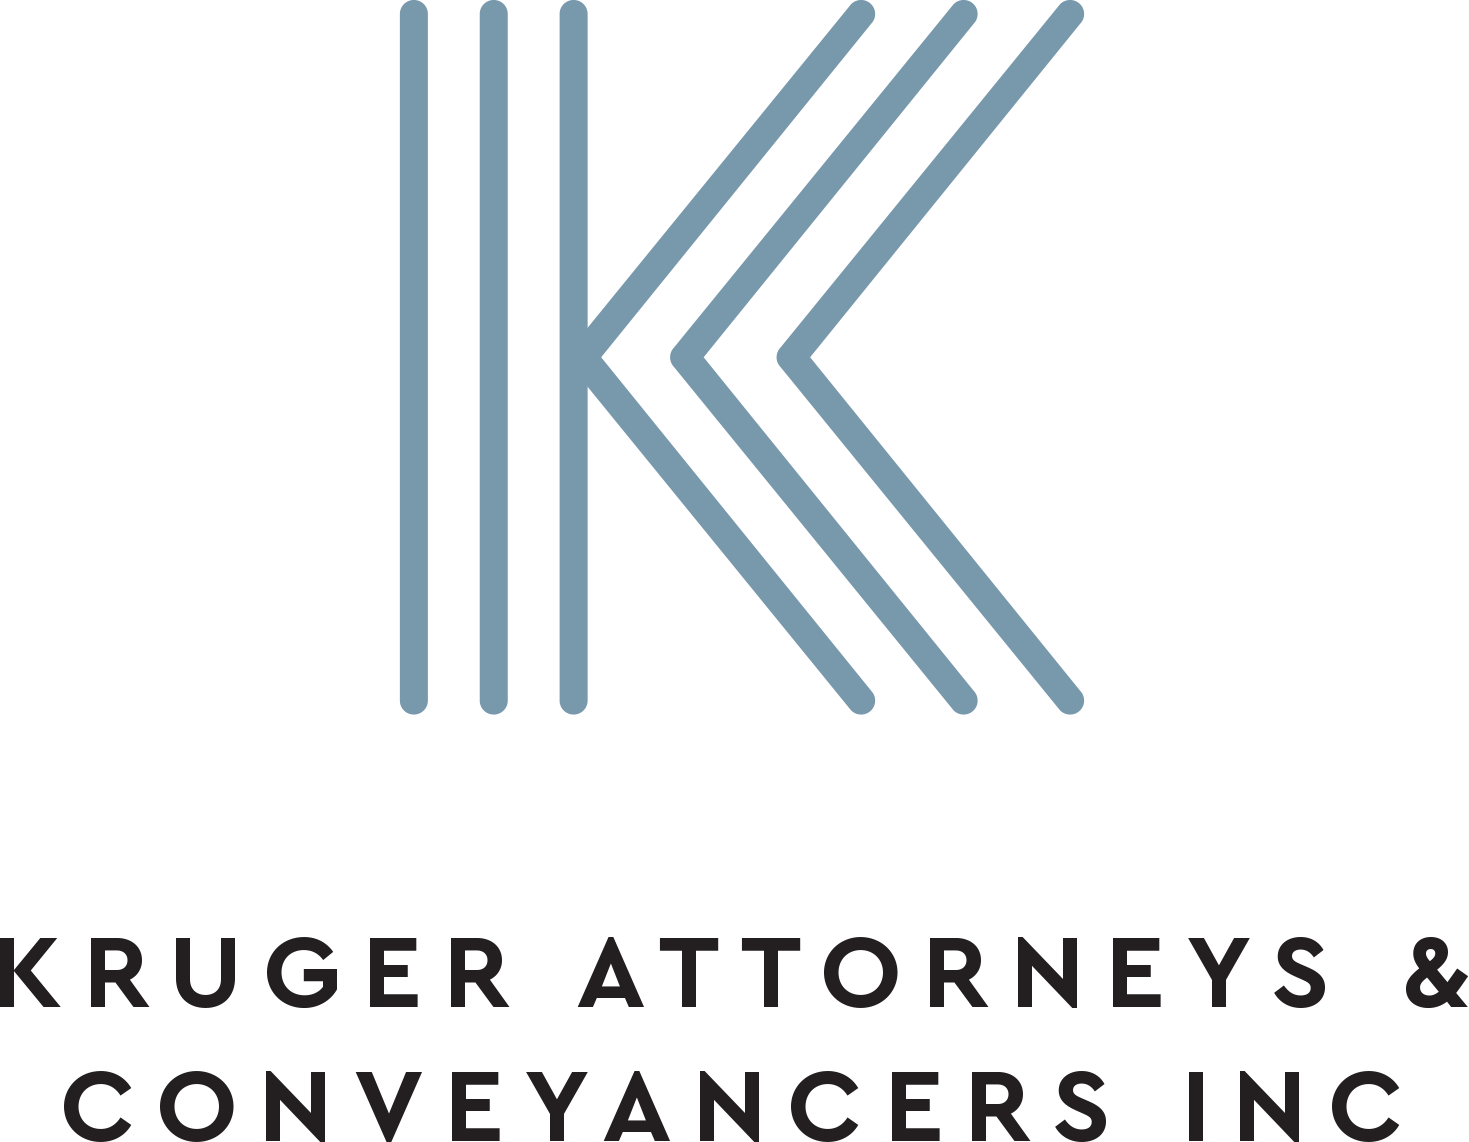 Kruger Attorneys & Conveyancers Inc